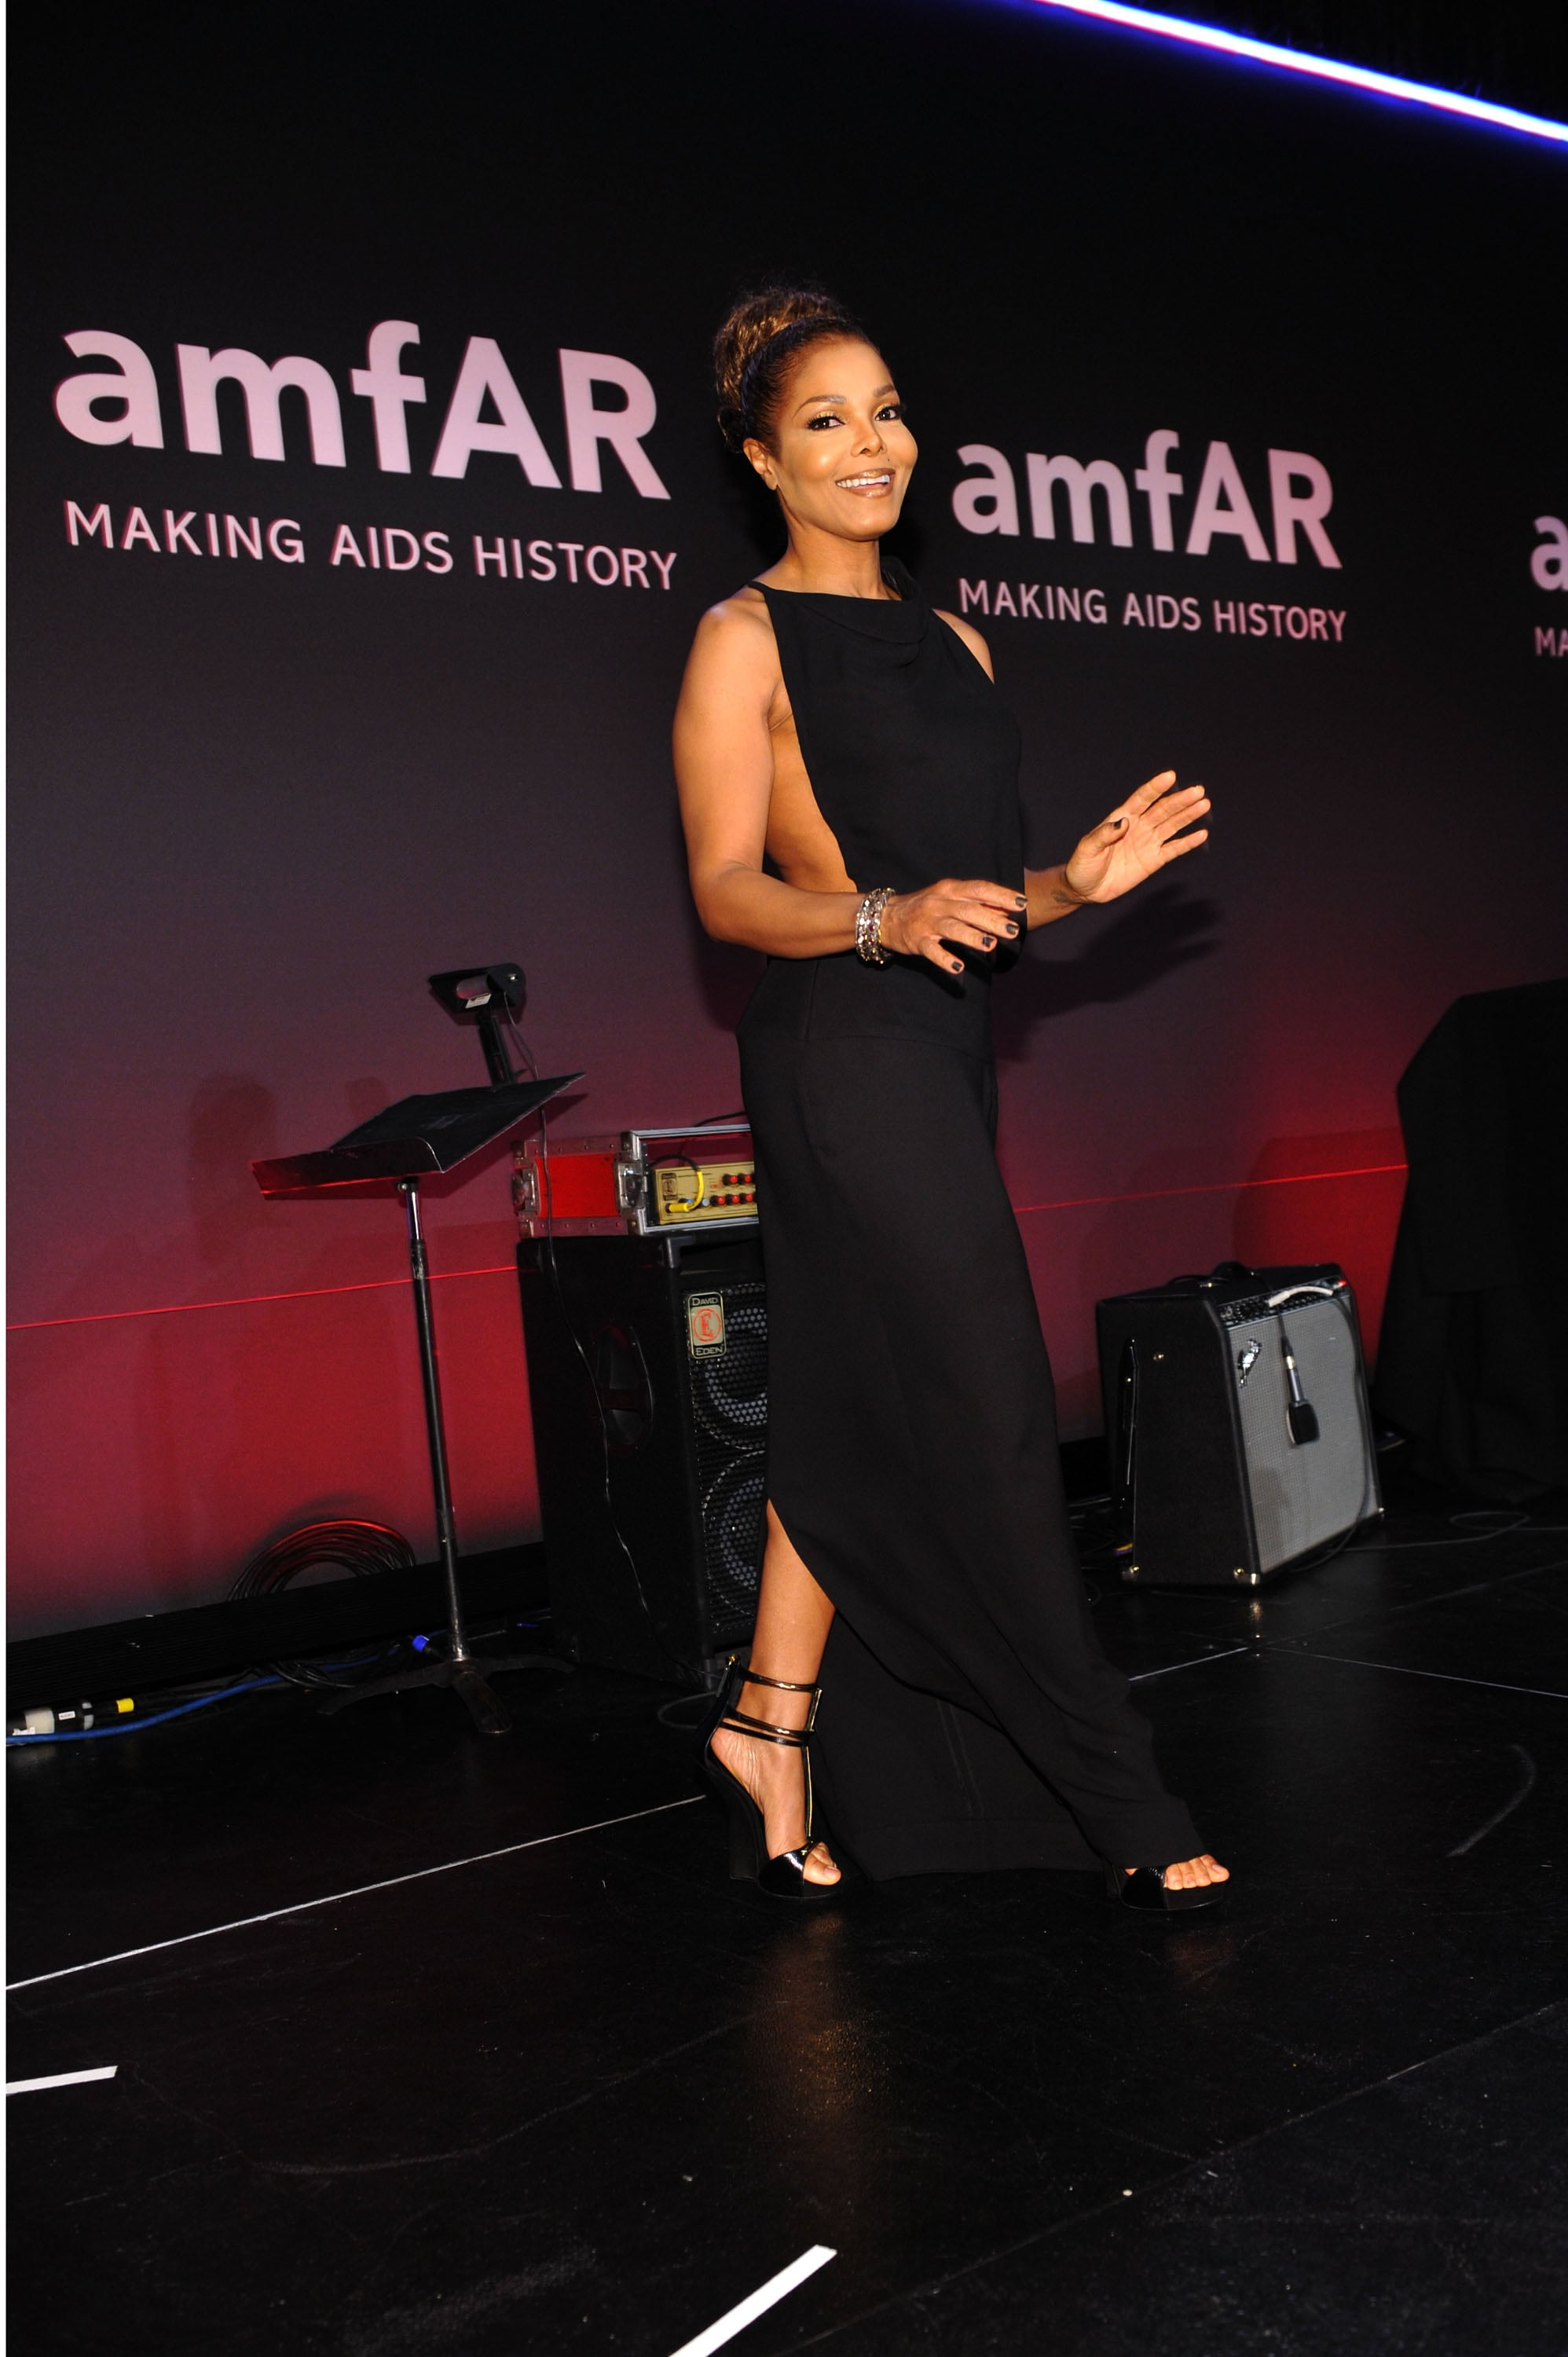 Janet Jackson, an amfAR honoree, took the stage in a sexy black gown with cutouts.